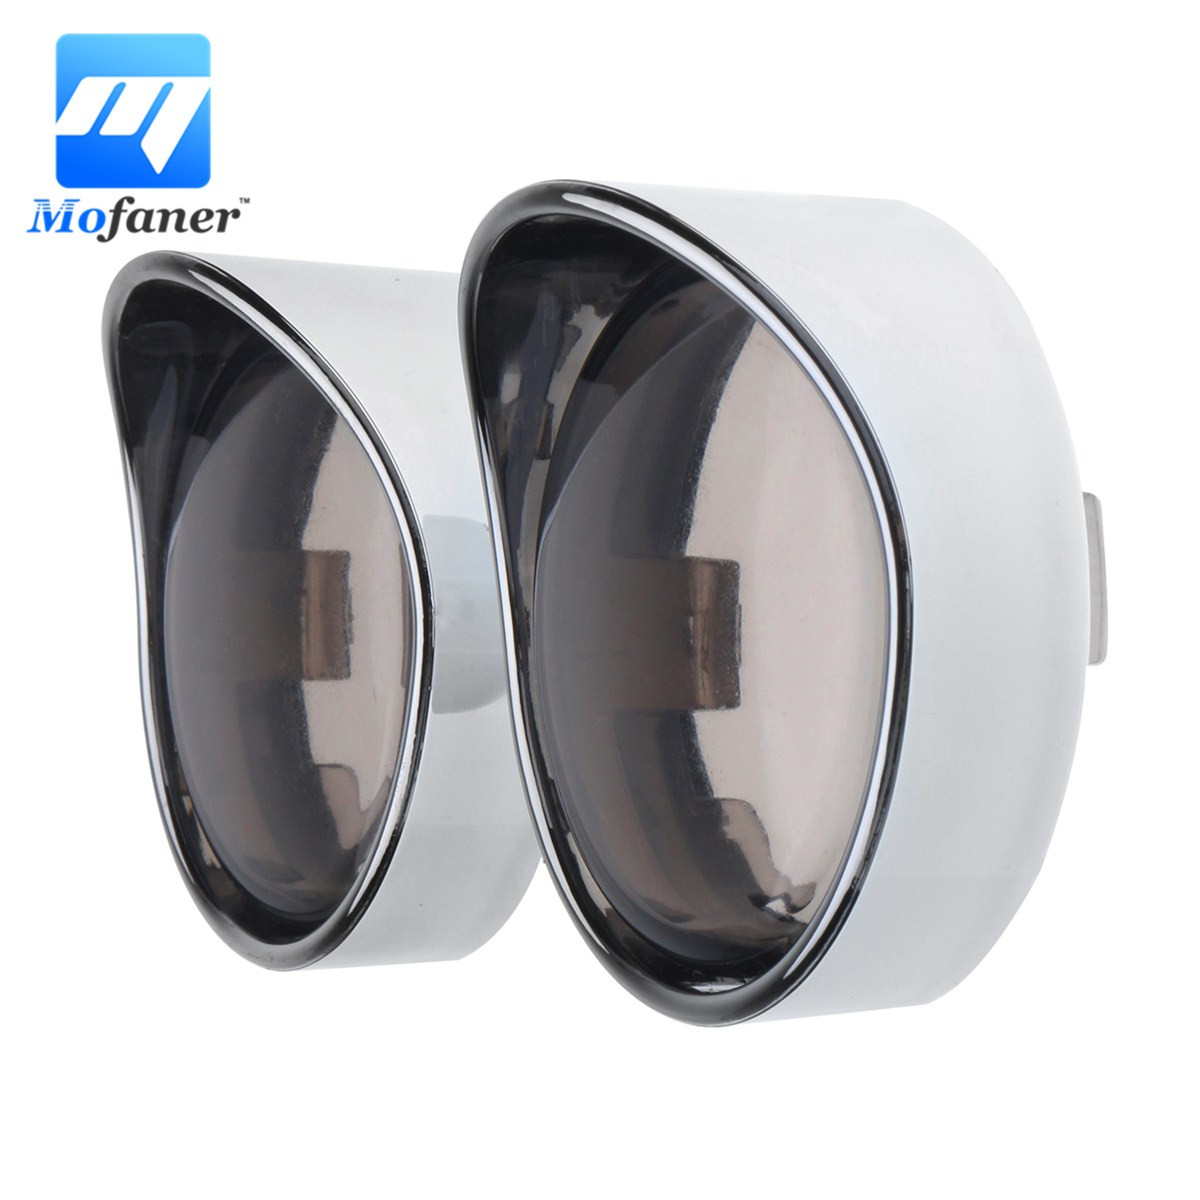 Mofaner 2Pieces Chrome Turn Signal Visor Ring Smoked Lens Cover Cap For Harley XL883 XL1200Mofaner 2Pieces Chrome Turn Signal Visor Ring Smoked Lens Cover Cap For Harley XL883 XL1200